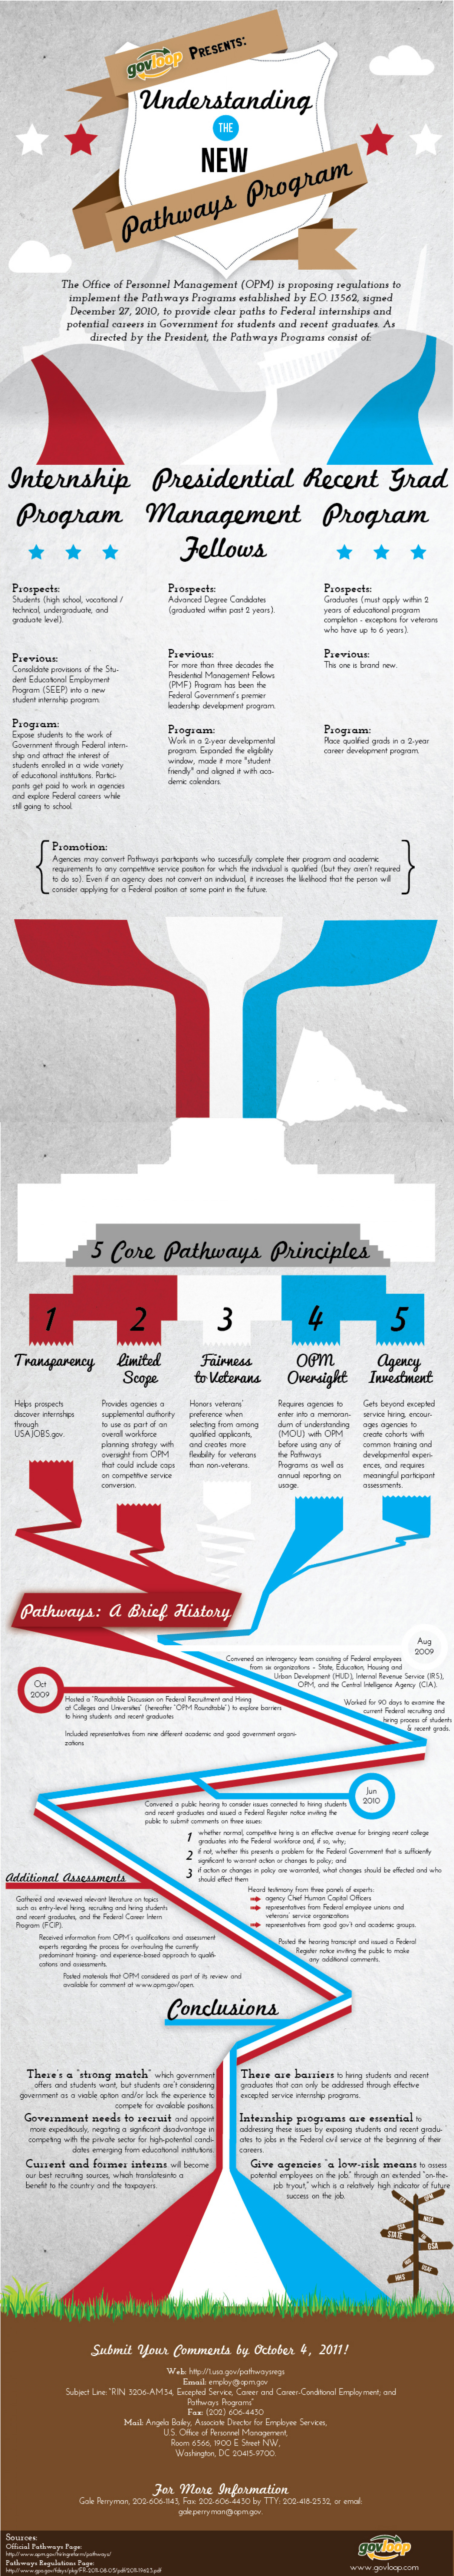 Understanding the New Pathways Program  Infographic